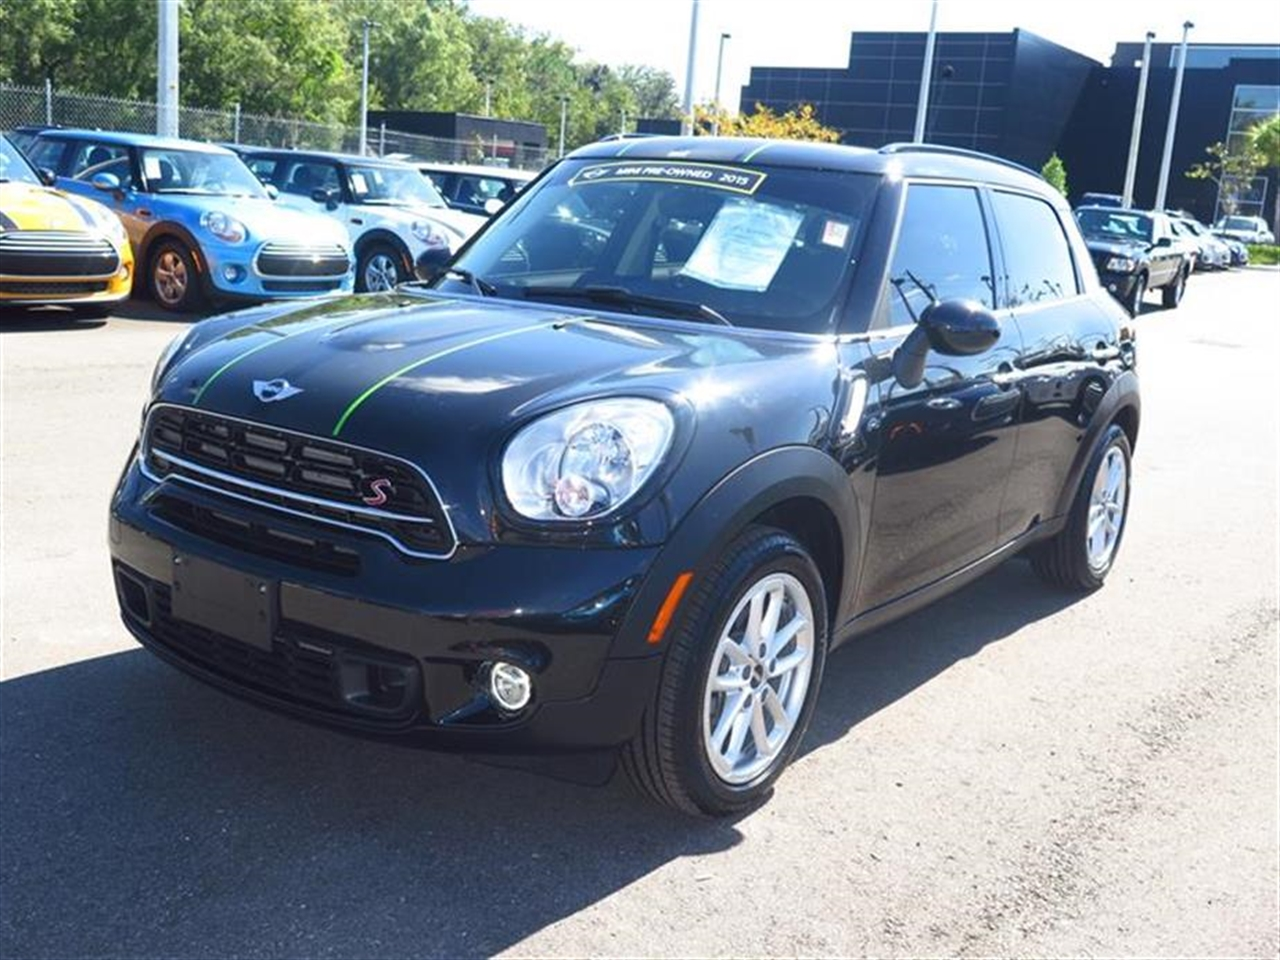 2015 MINI COOPER COUNTRYMAN FWD 4dr S 0 miles 2 Seatback Storage Pockets 3 12V DC Power Outlets